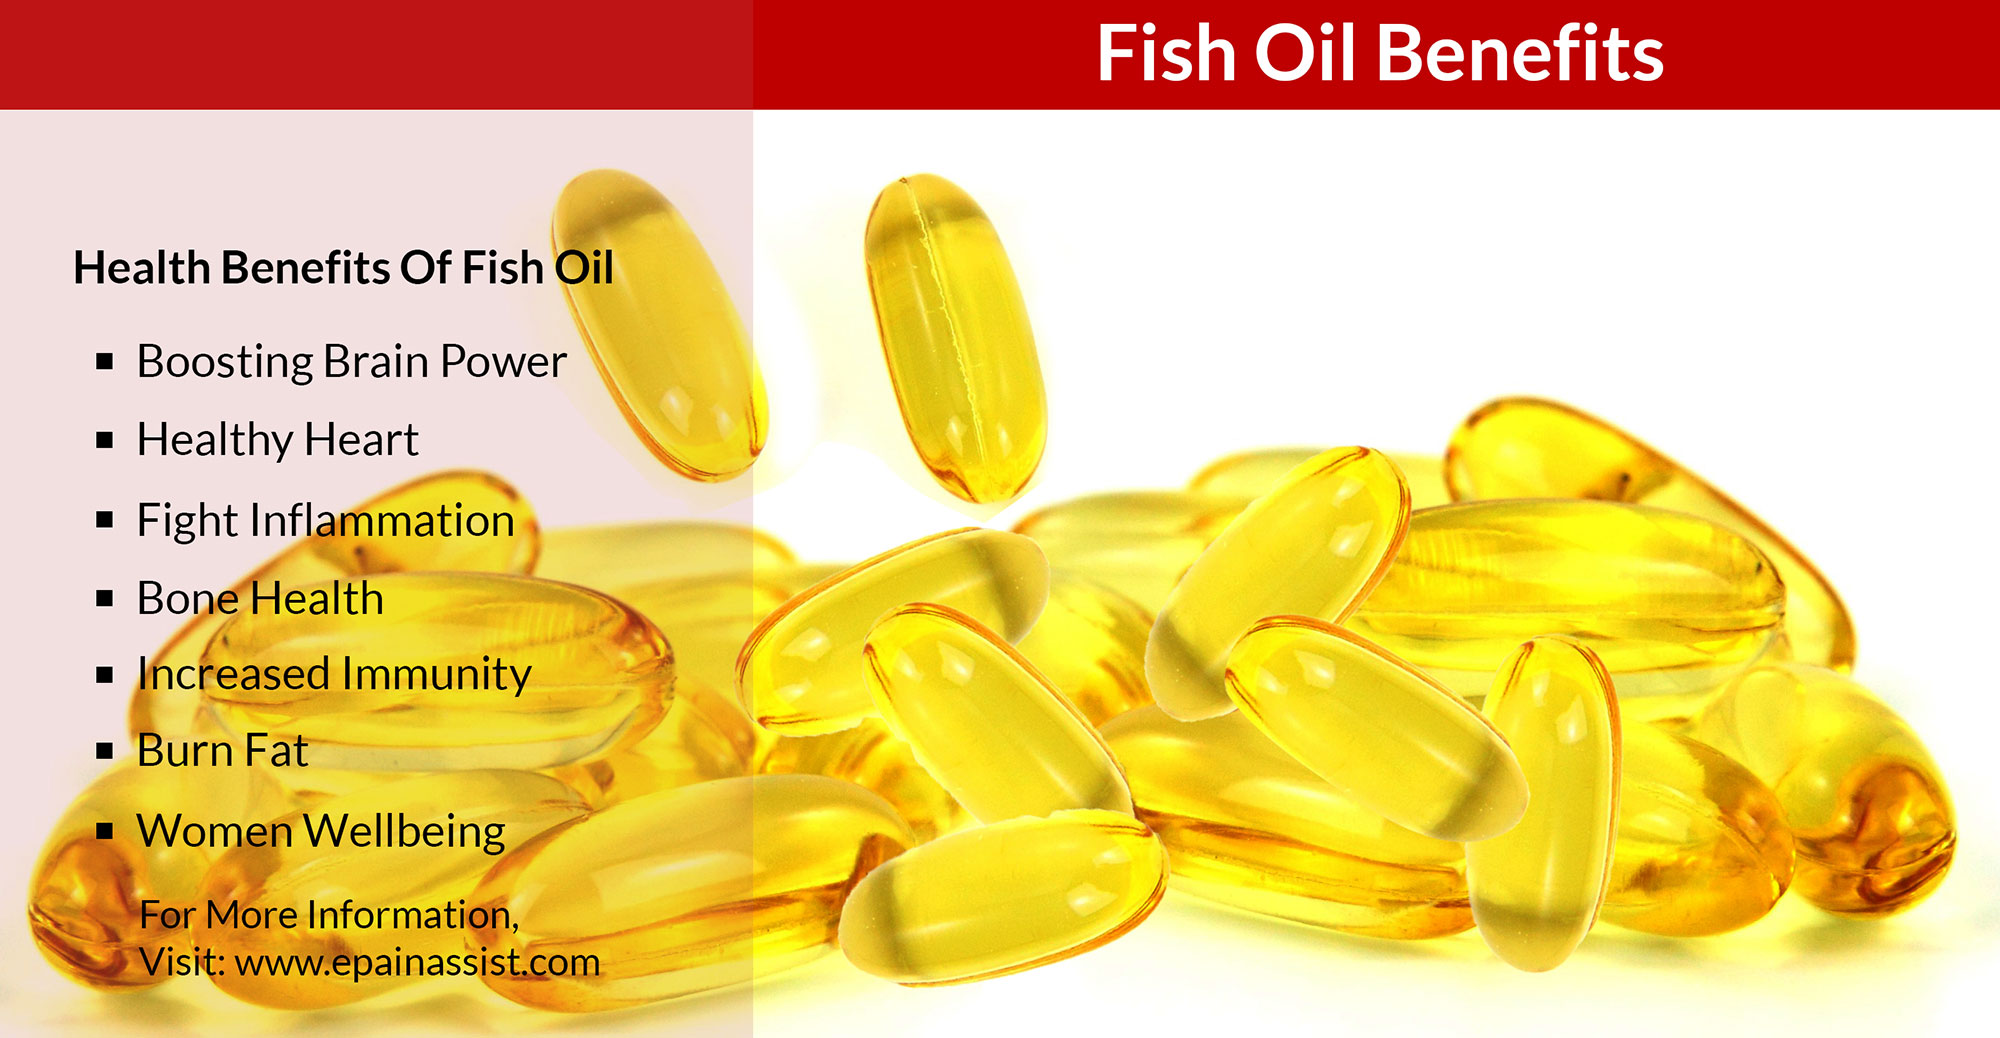 Health benefits health benefits fish oil for Fish oil uses